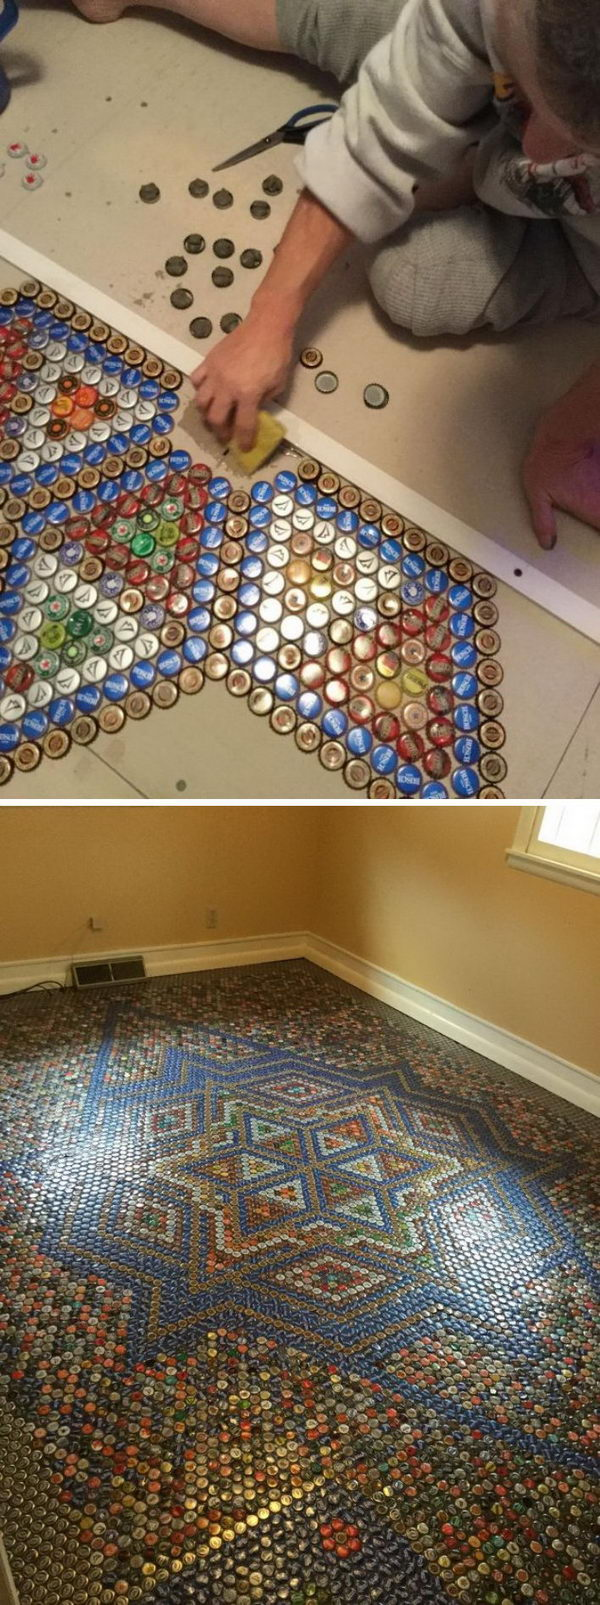 Bottle Cap Flooring.